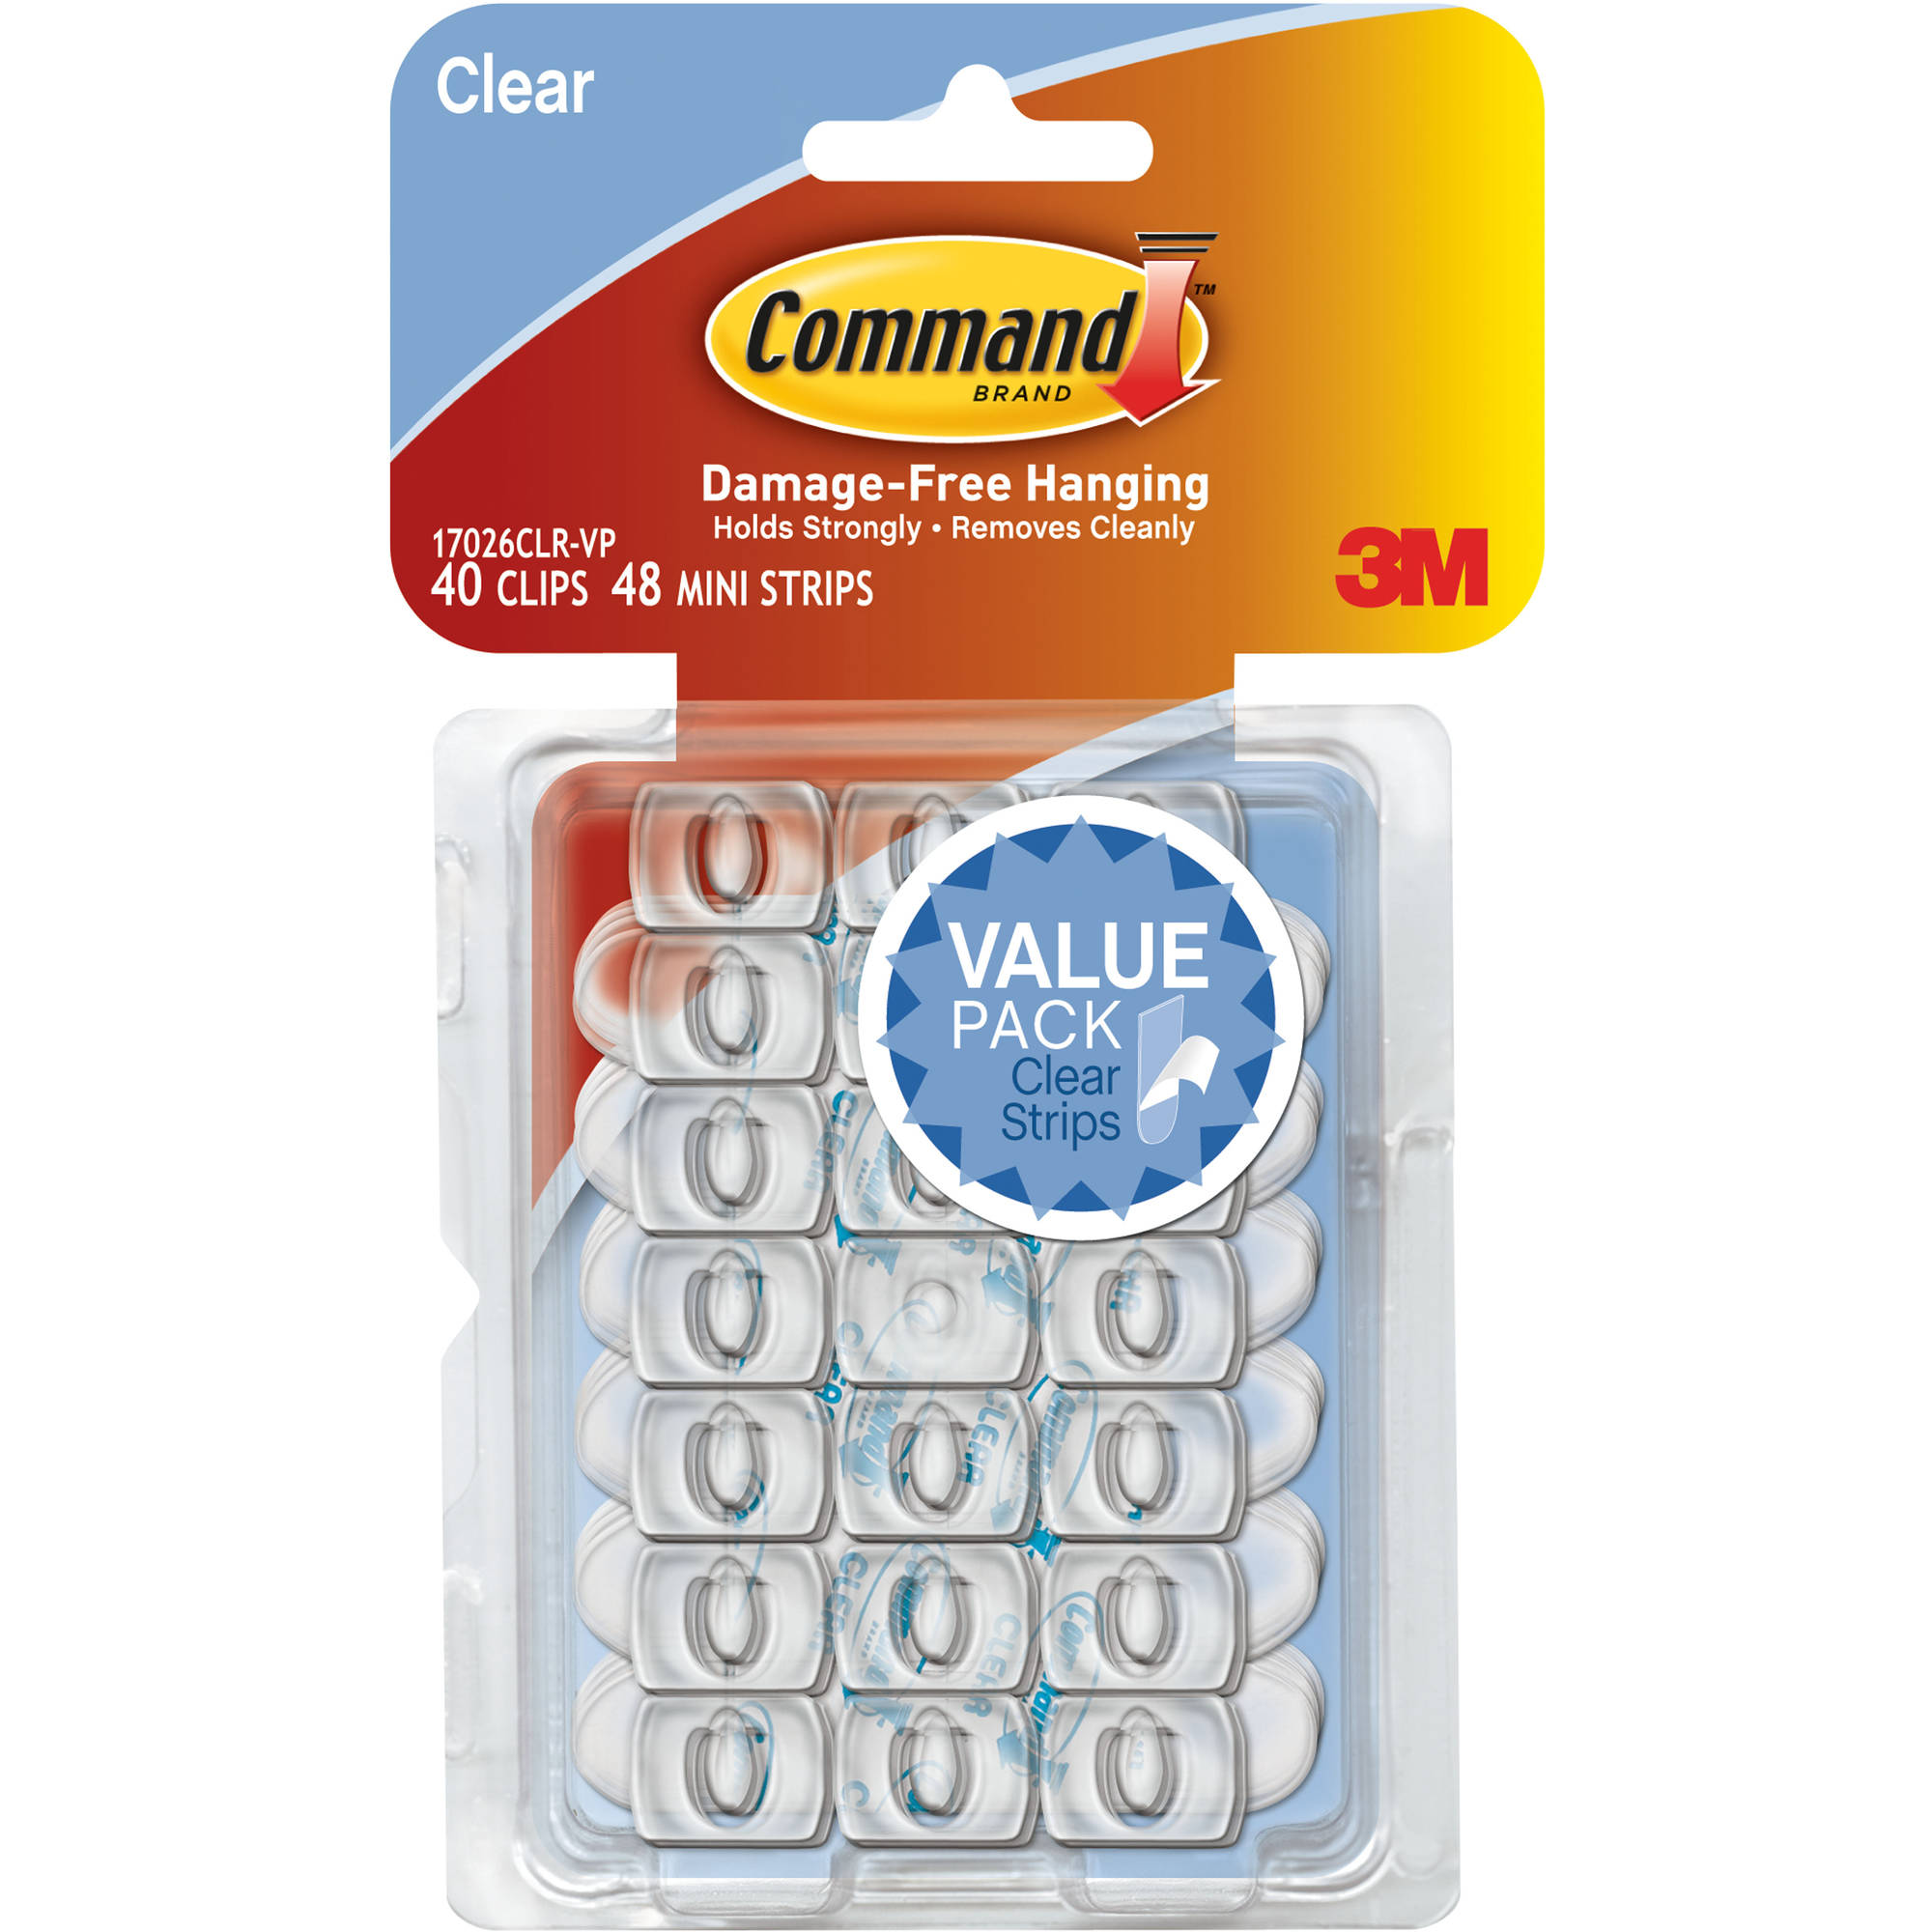 Command Clear Decorating Clips Value Pack, 40 clips, 17026CLR-VP